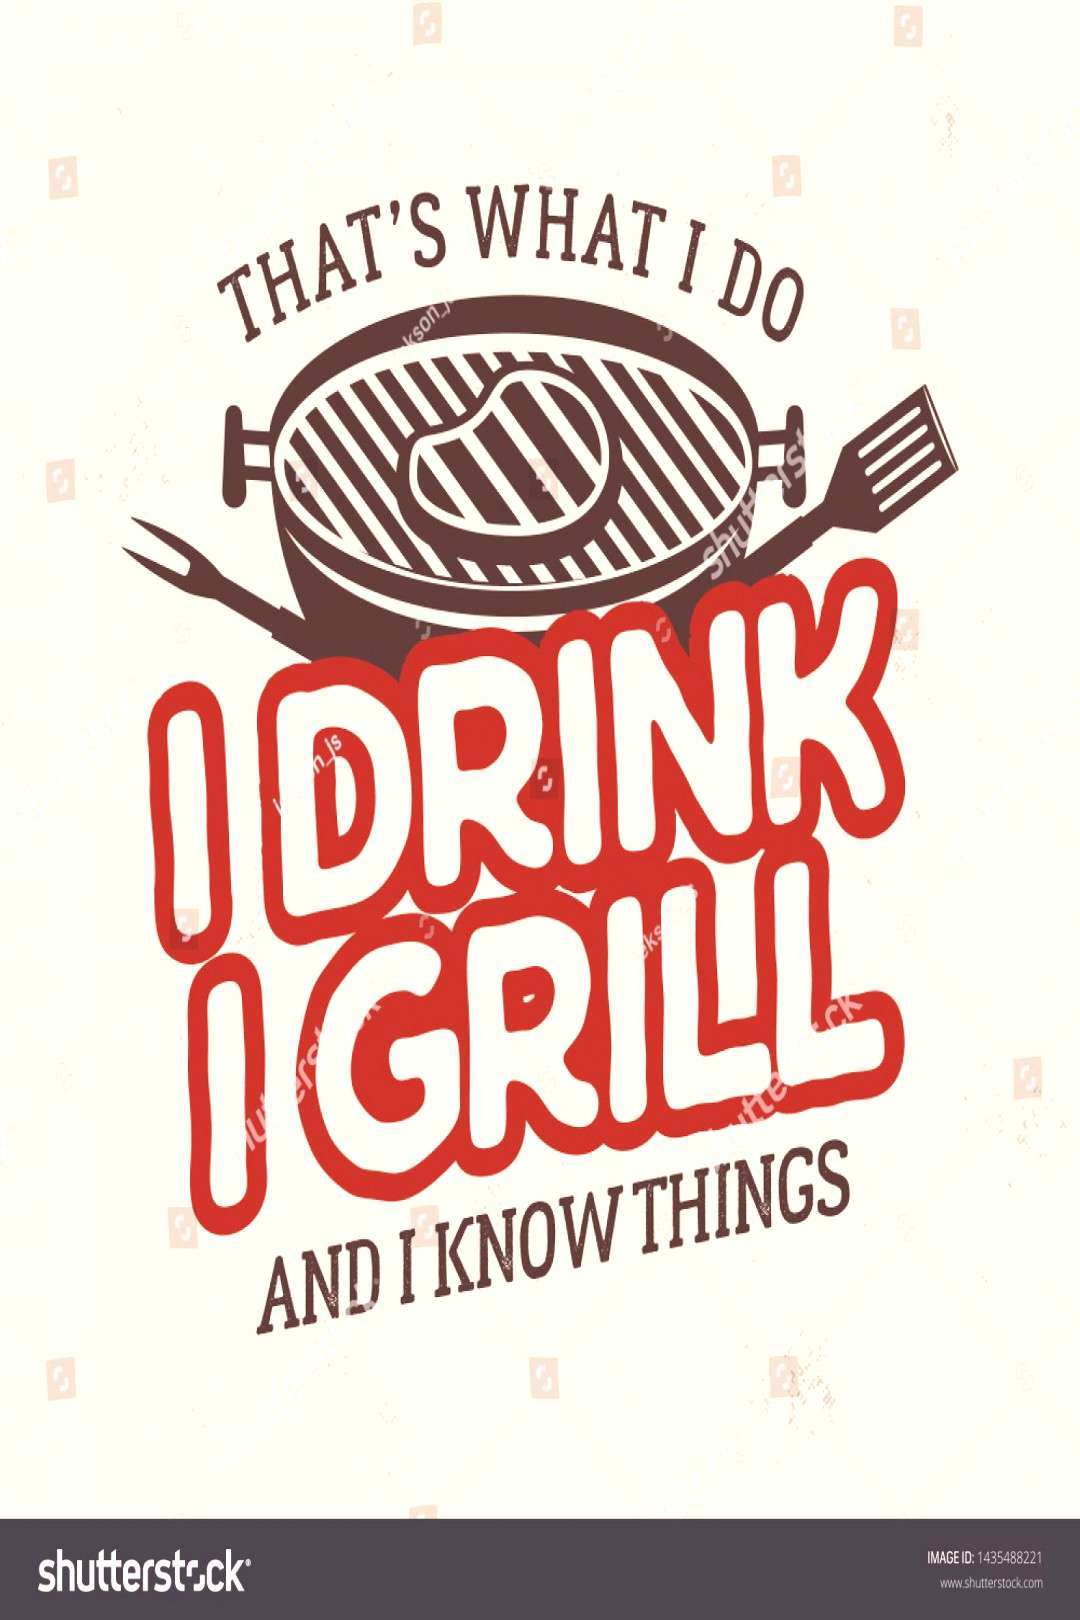 Vintage BBQ t shirt graphic design. Retro summer barbecue logo emblem with phrase - Thats what I do